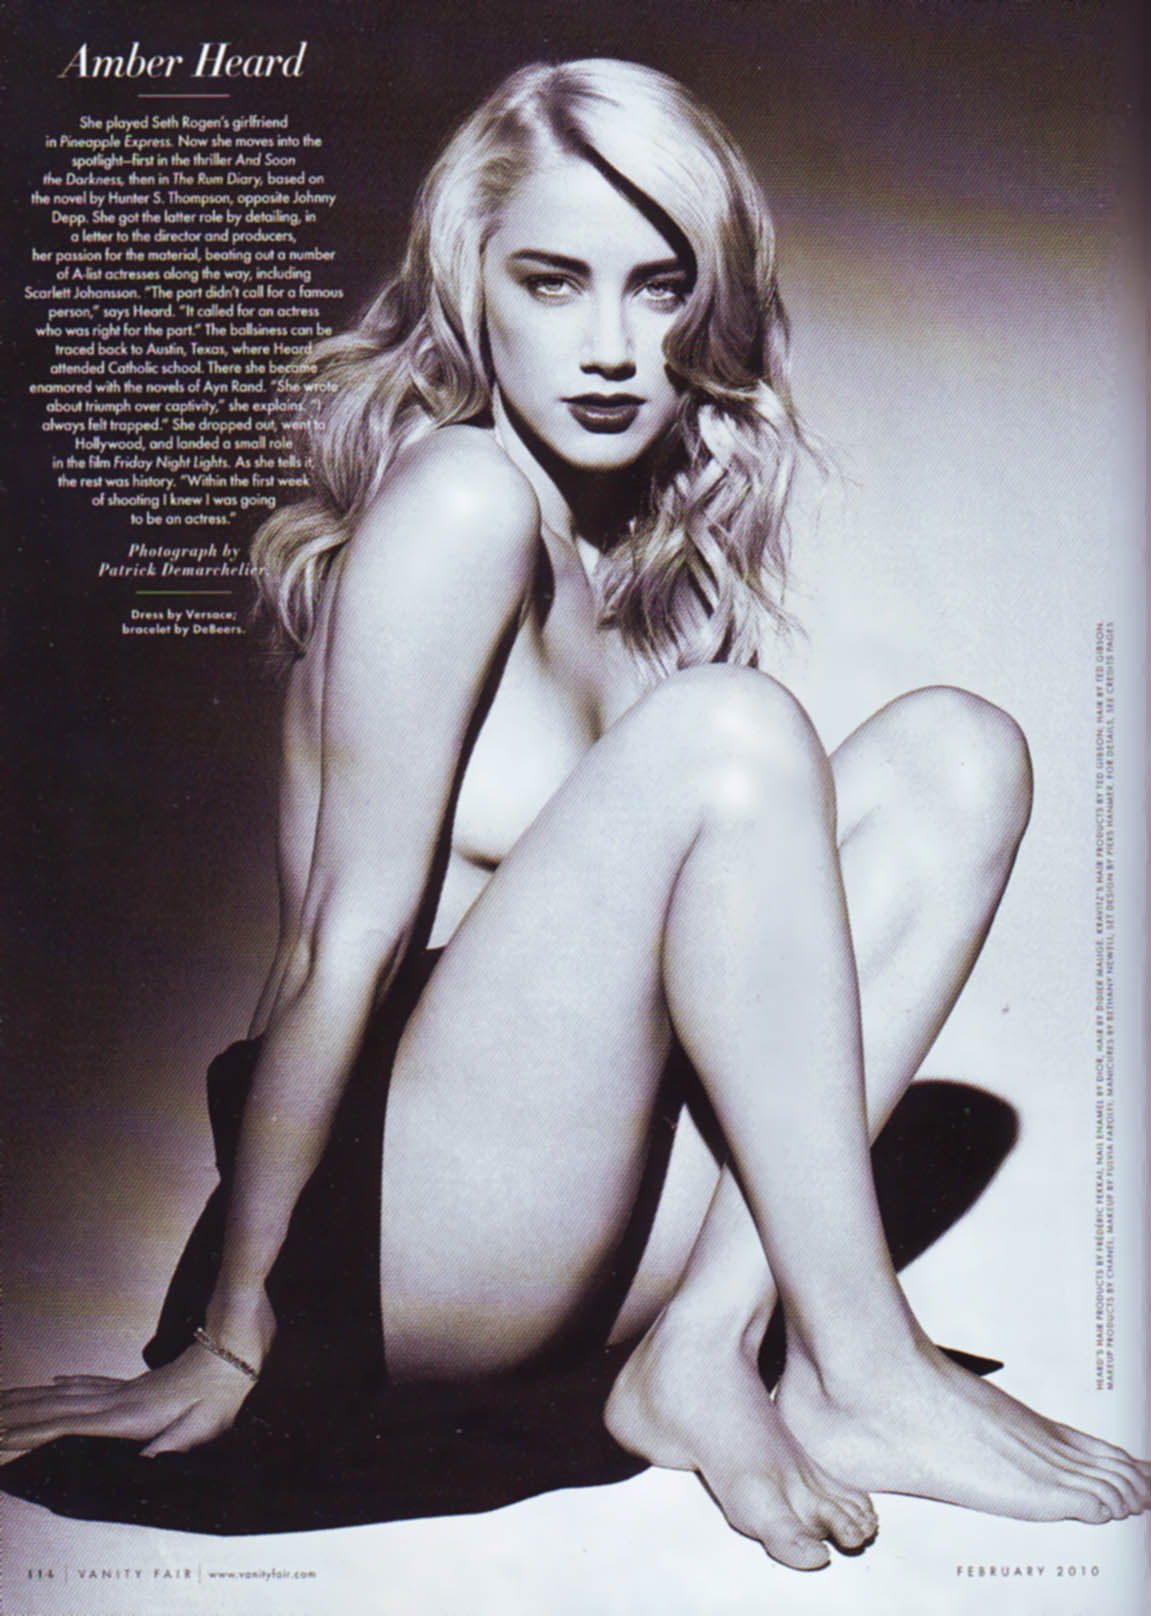 Amber Heard Is The Most Scientifically Beautiful Woman: Stunning And Magnificent Examples Of Sumptuous Delights